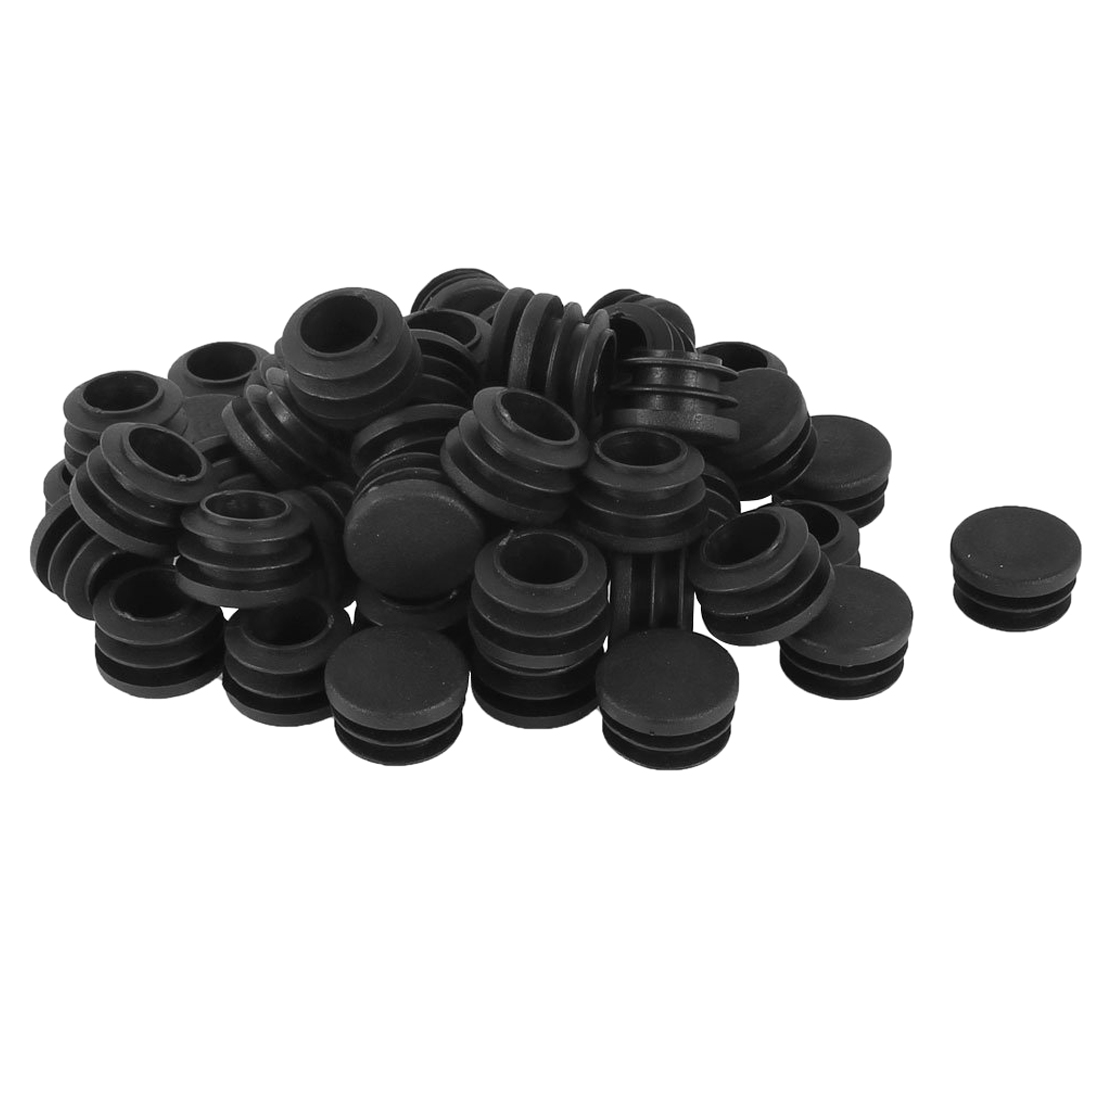 Plastic Round Cap Chair Table Legs Ribbed Tube Insert 22mm